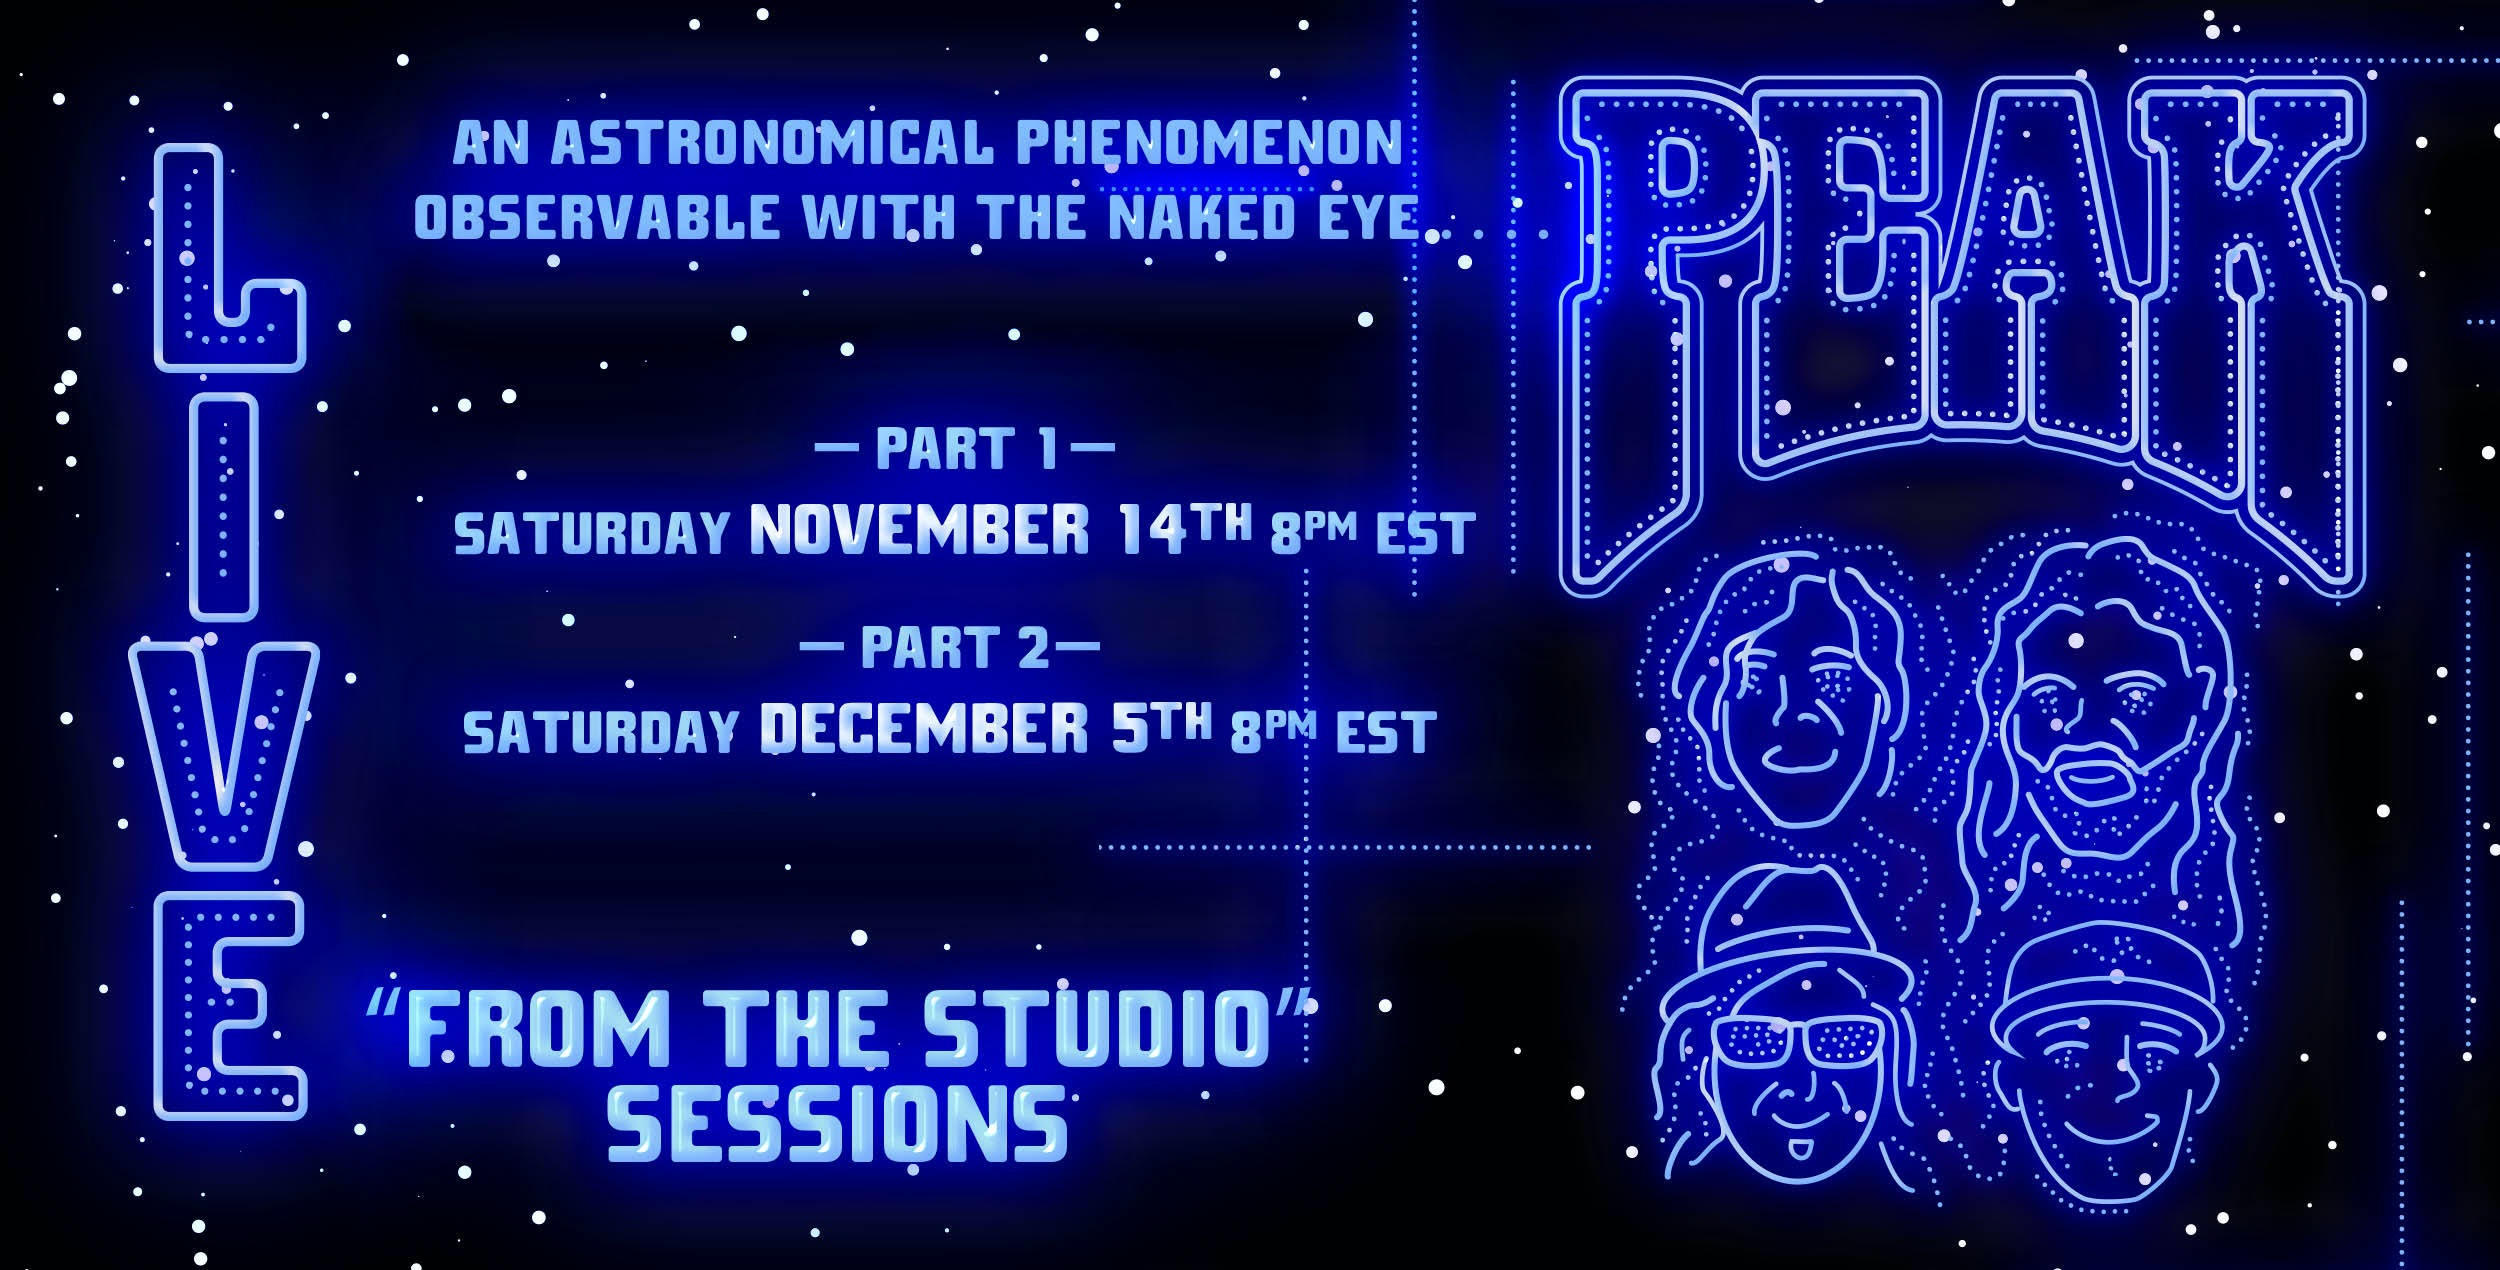 PEAK announces Live From The Studio Sessions, premiering Saturday, November 14